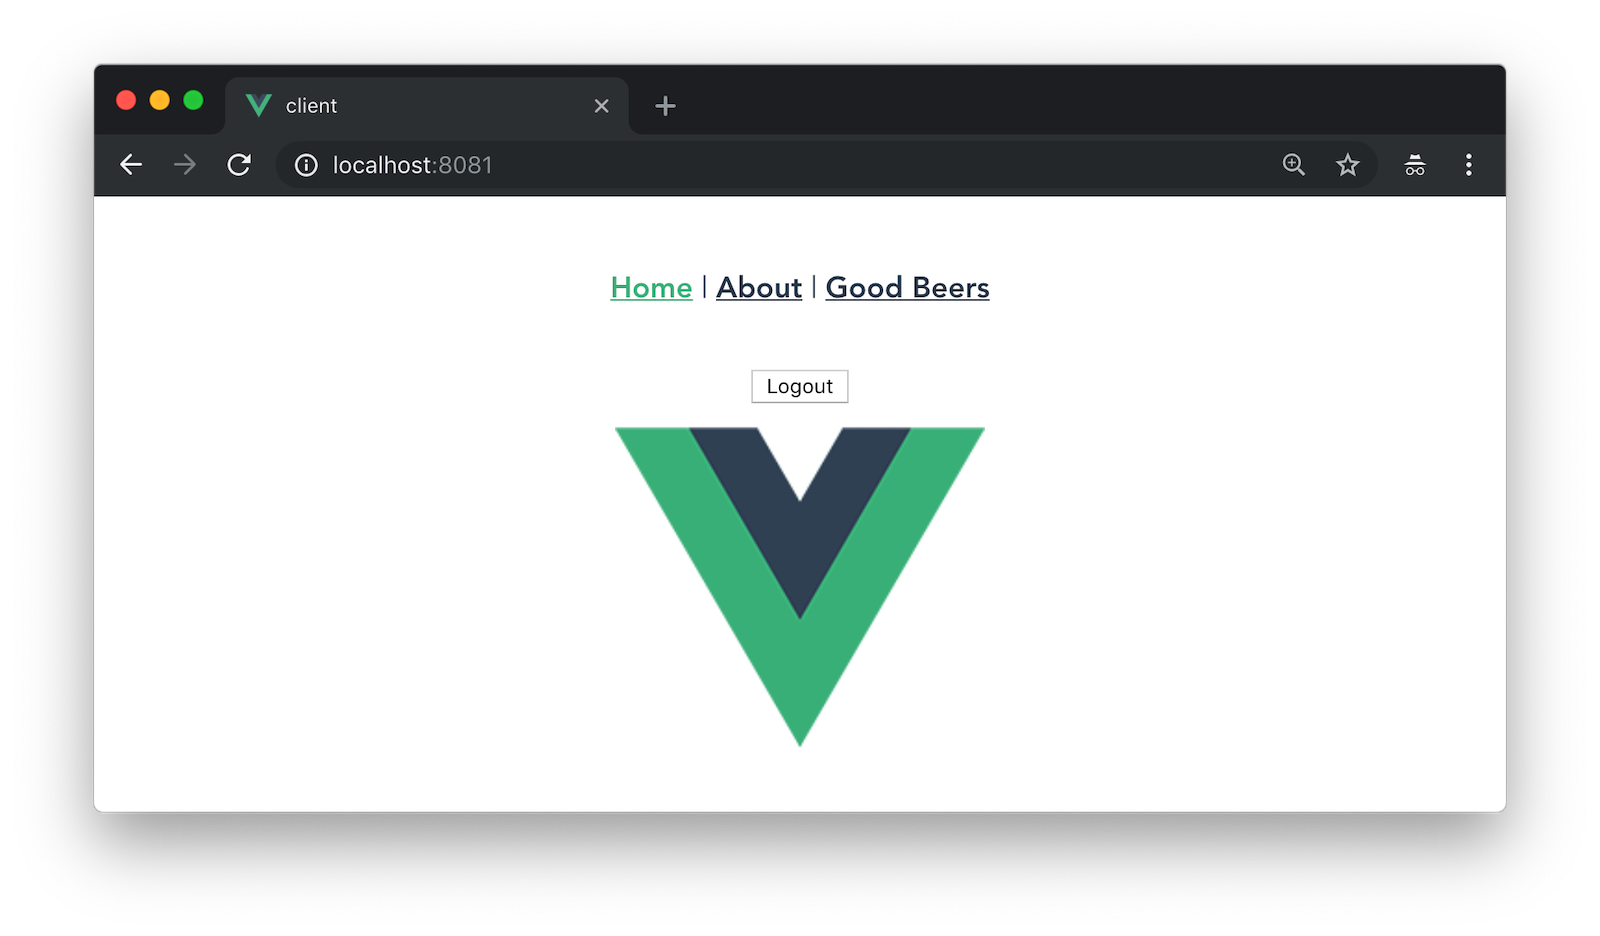 Vue app after authenticating